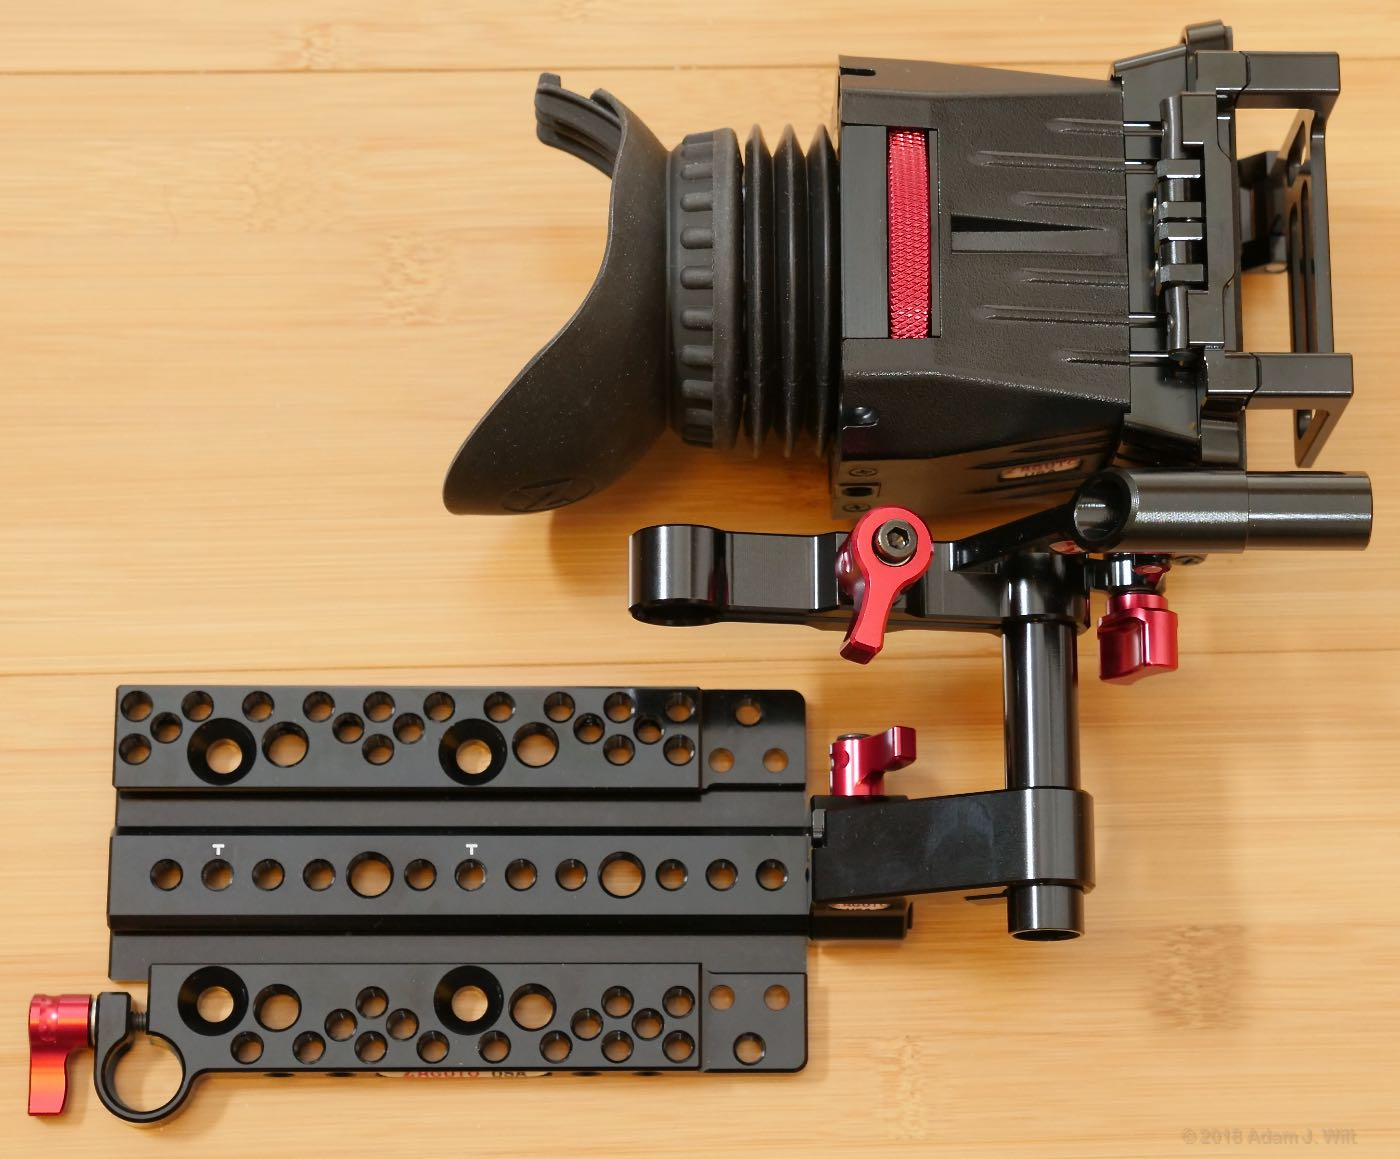 EVA1 Z-Finder, Z-Rail Axis Mount, and EVA1 Top Plate.